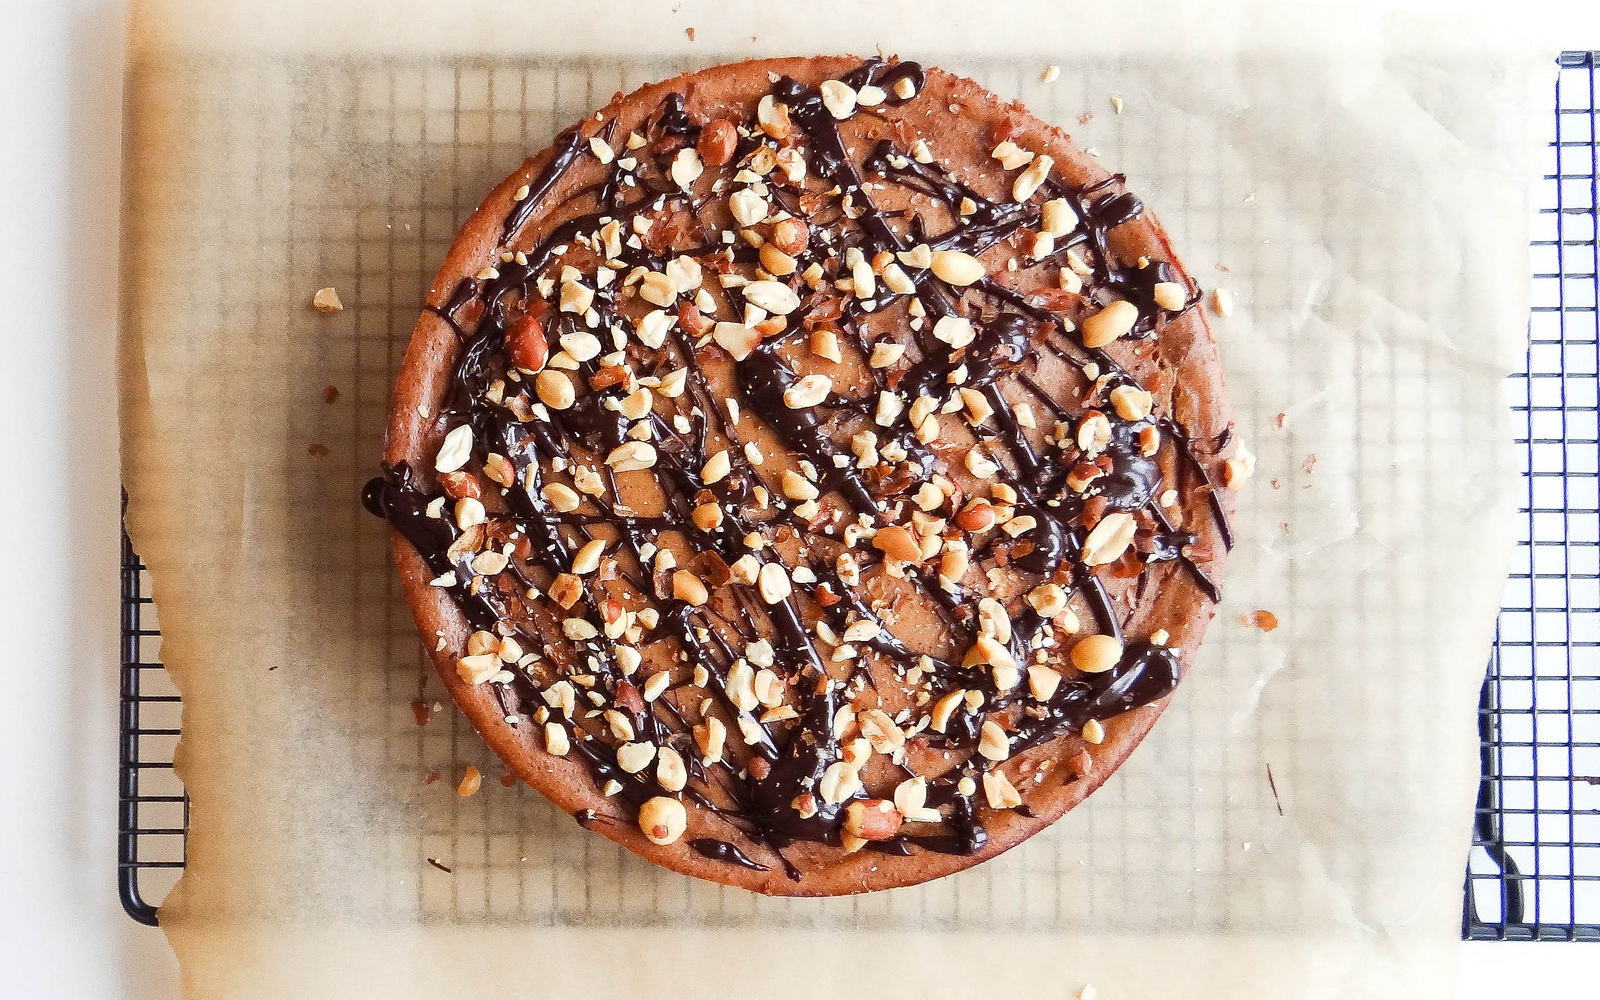 Peanut Butter Cheesecake With Chocolate Drizzle